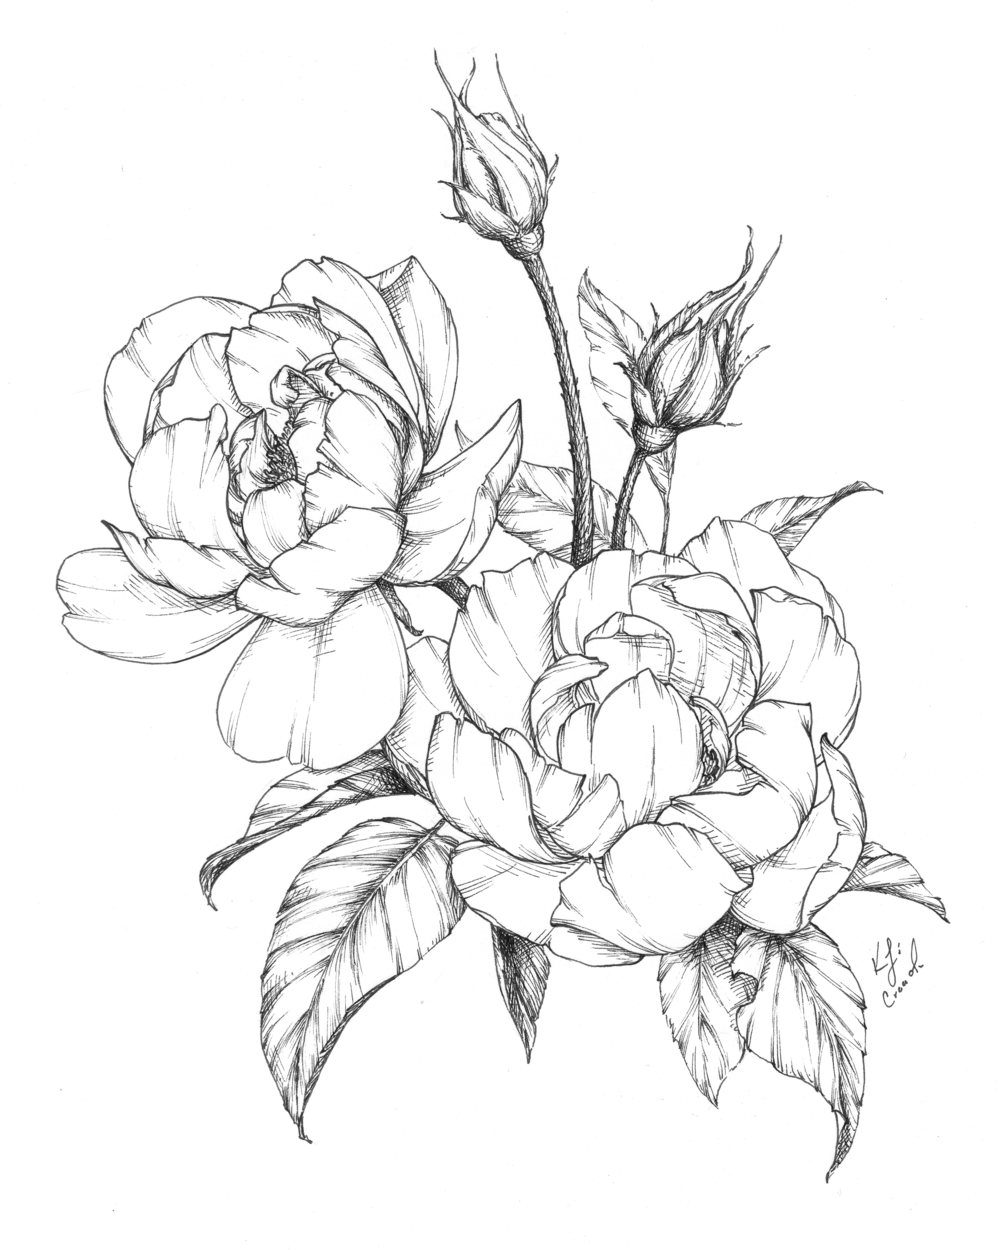 Botanical illustration featuring an ink contour and modern shading on large, floppy garden roses that almost have a romantic peony feel!  Learn to shade like this in Katrina's new Flower Shading Course! #botanicalillustrations #flowerillustrations #botanicaldrawing #flowerdrawing #floraldrawing